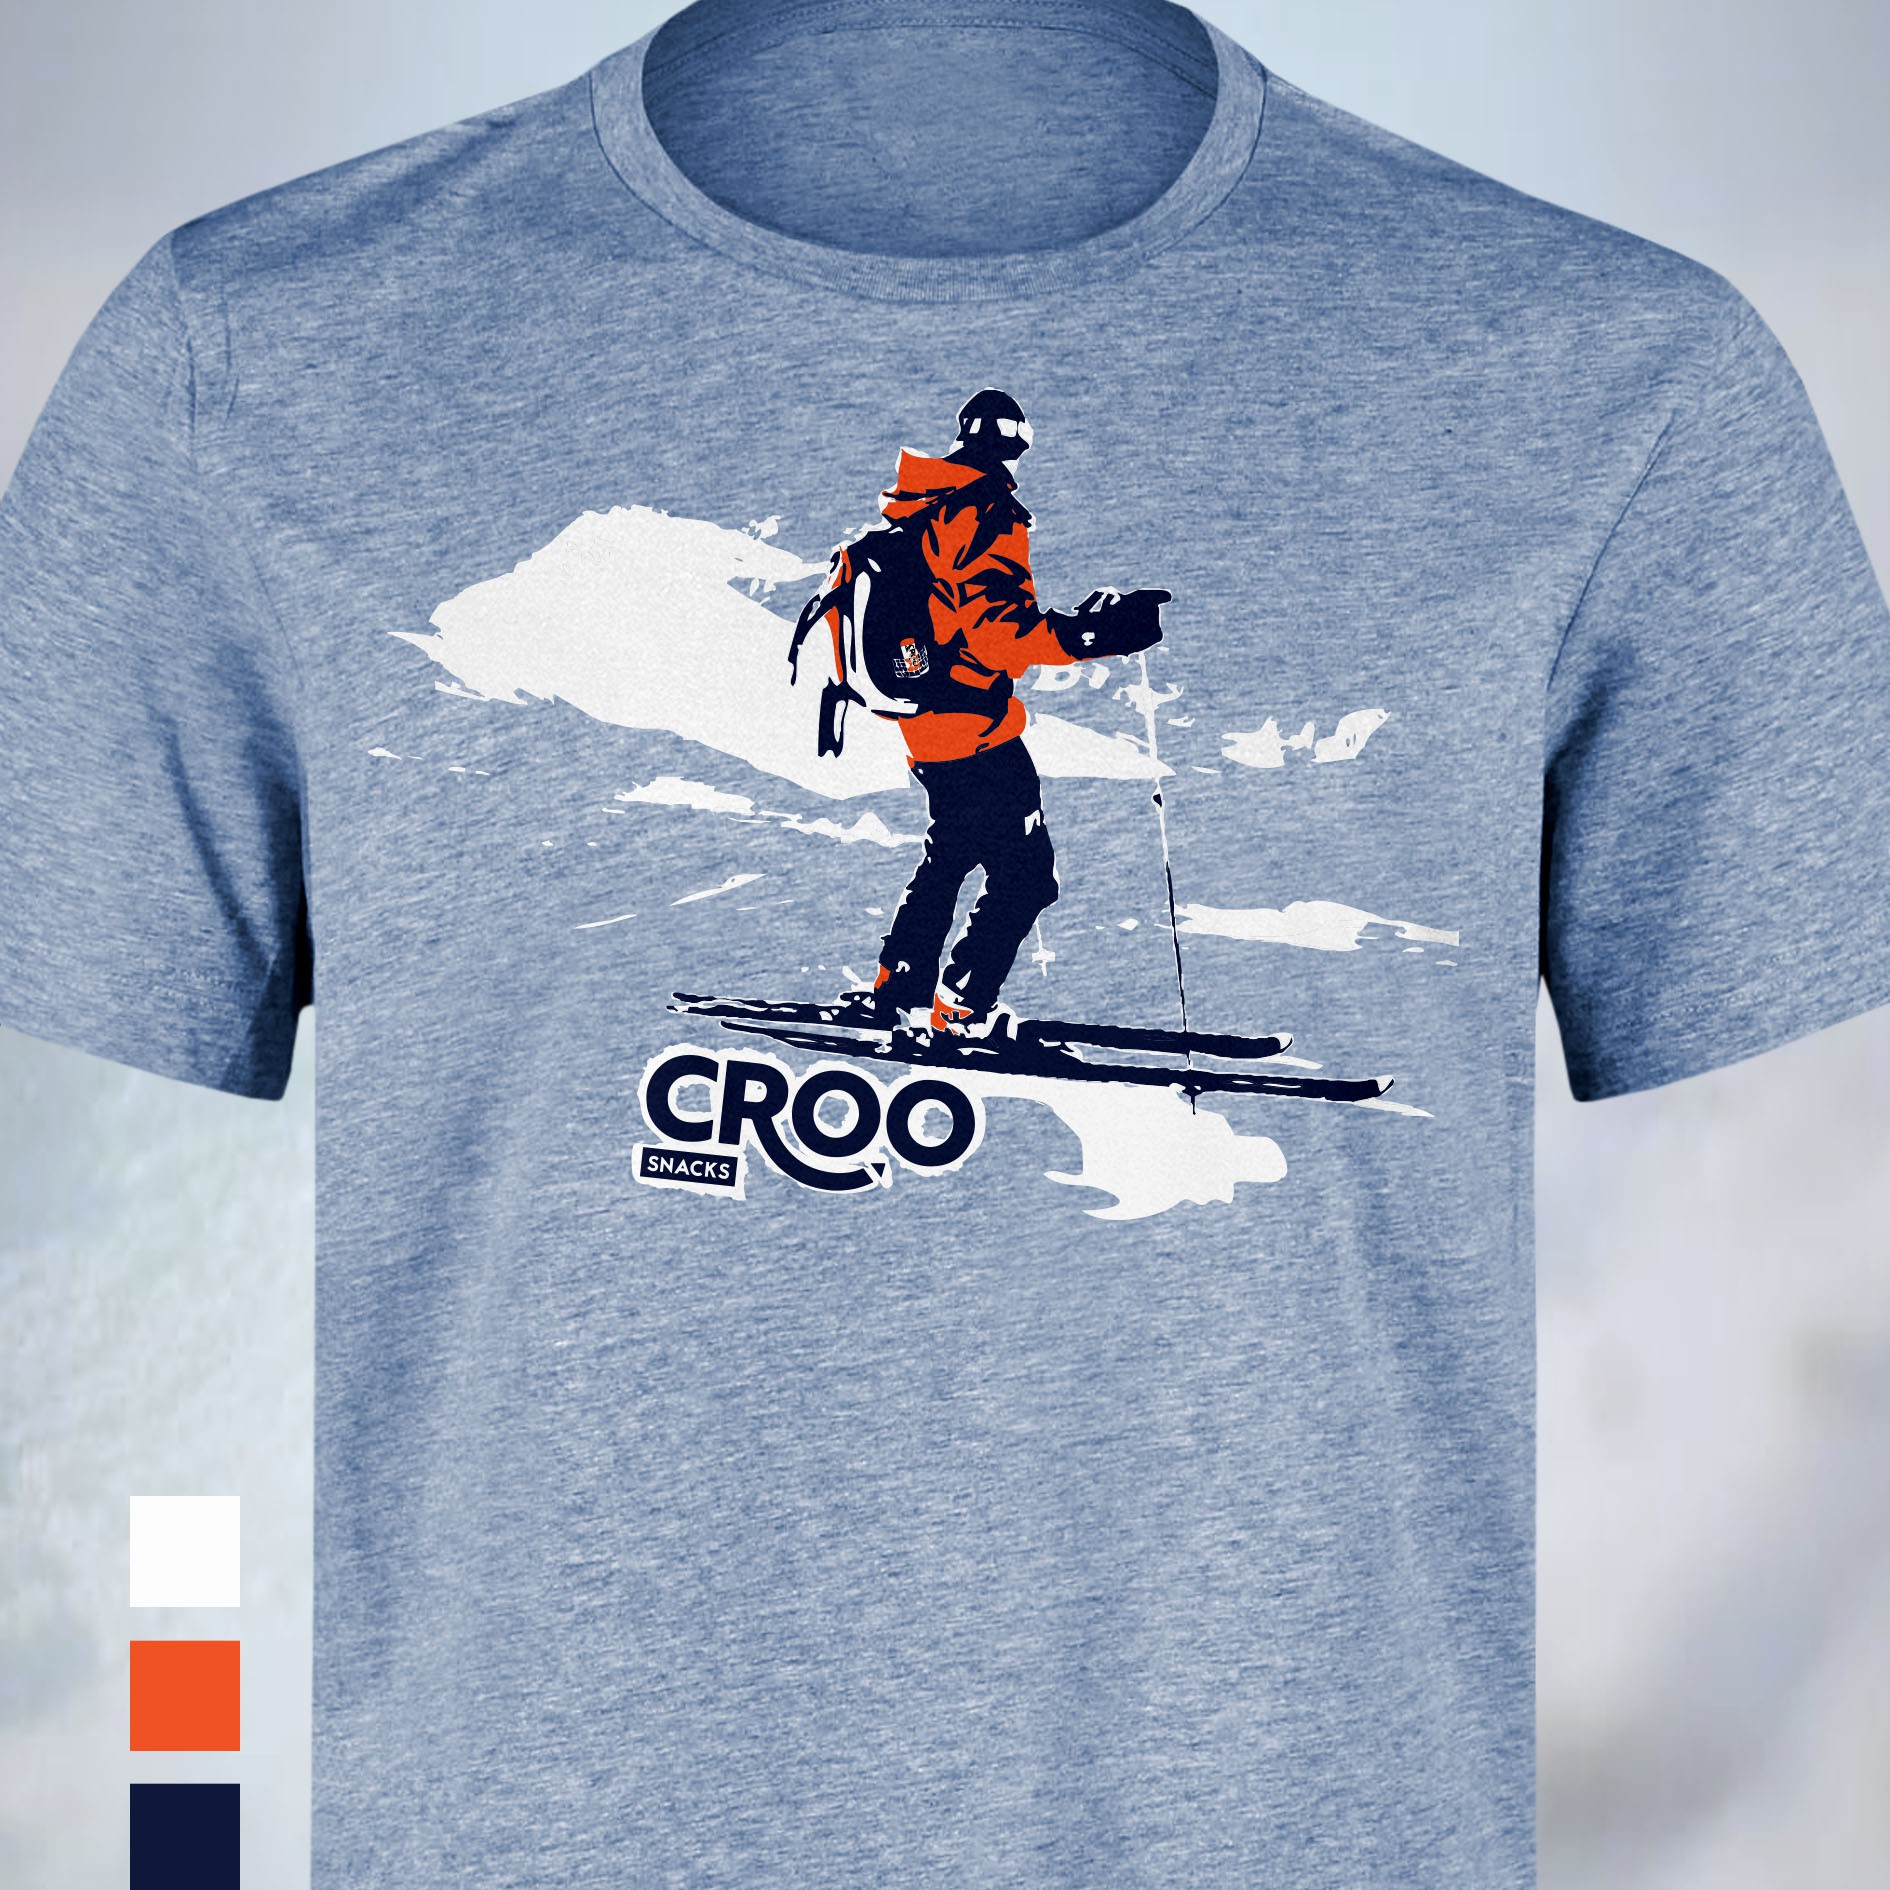 Design a Shirt for a Ski-inspired Snack Brand